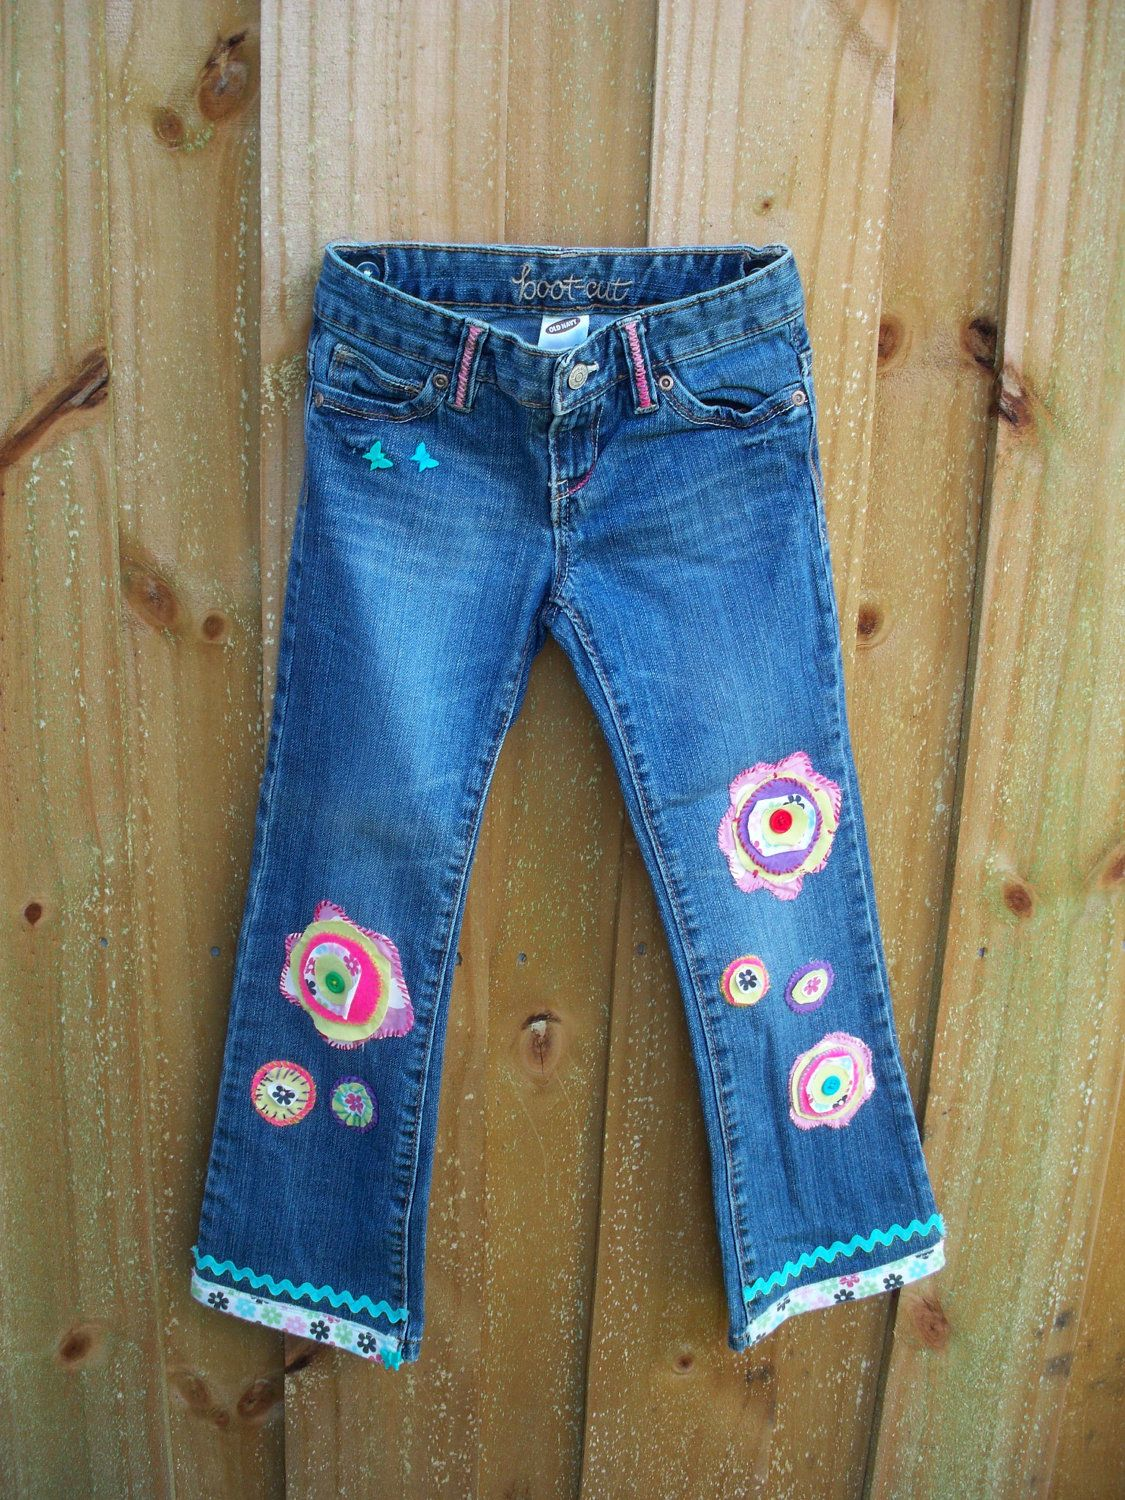 188005a3c13 Upcycled - recycled jean for girls embellished jeans repurpose denin  size  6..  25.00